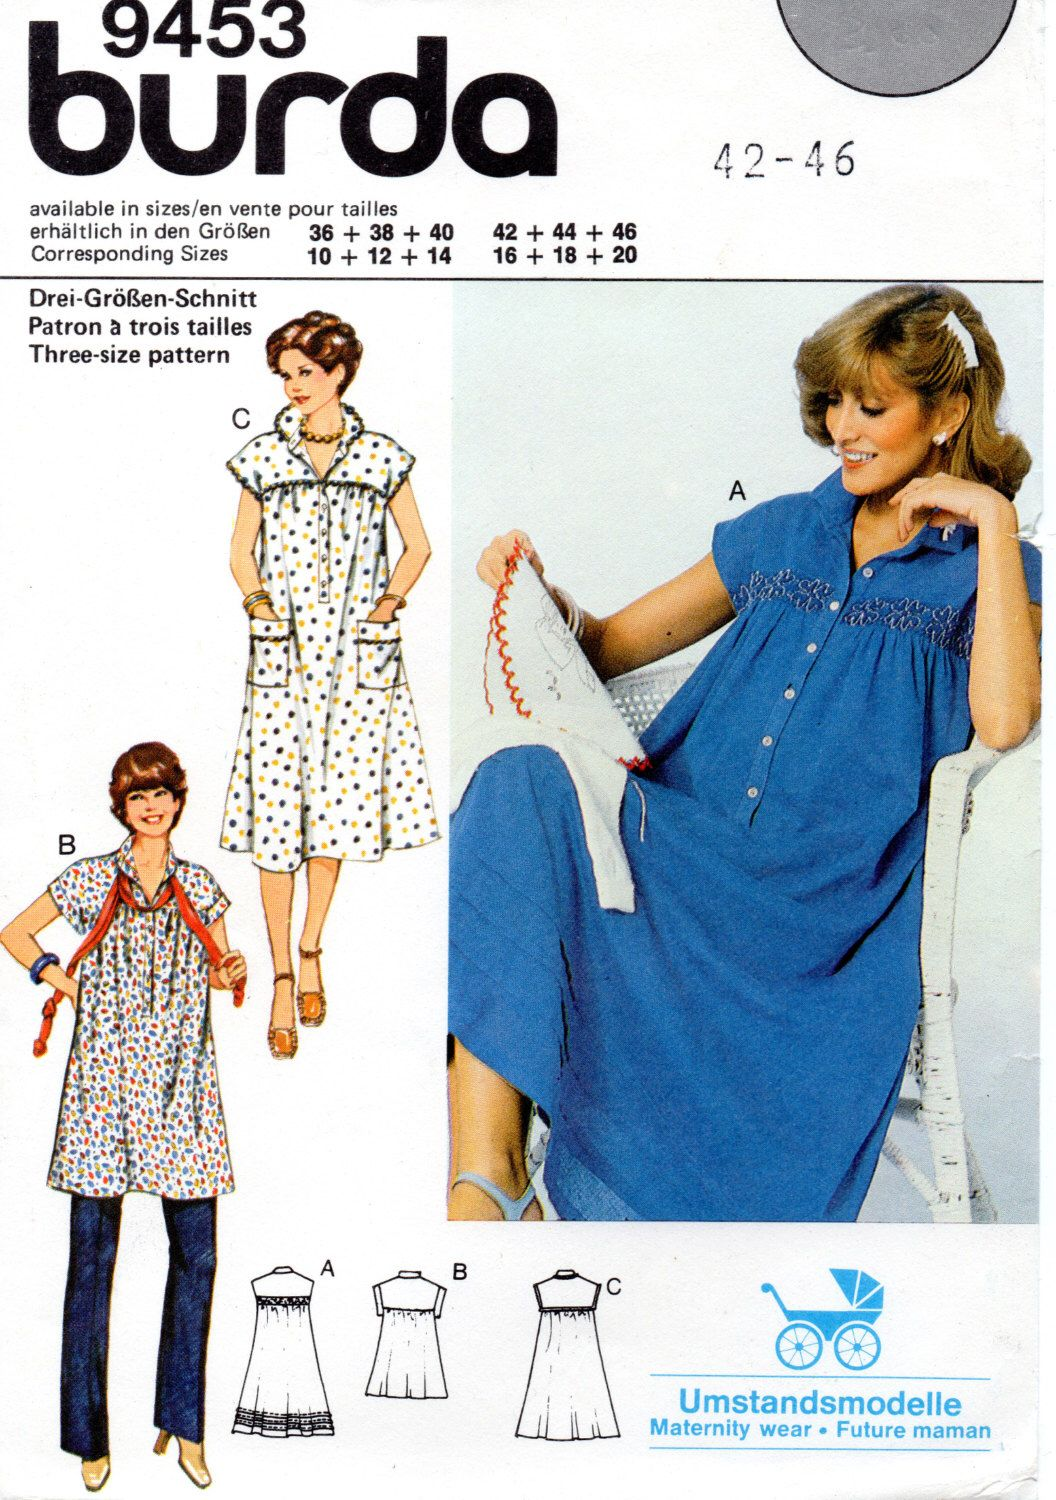 Vintage 1980s plus size maternity dress and top sewing pattern vintage 1980s plus size maternity dress and top sewing pattern burda 9453 misses jeuxipadfo Choice Image